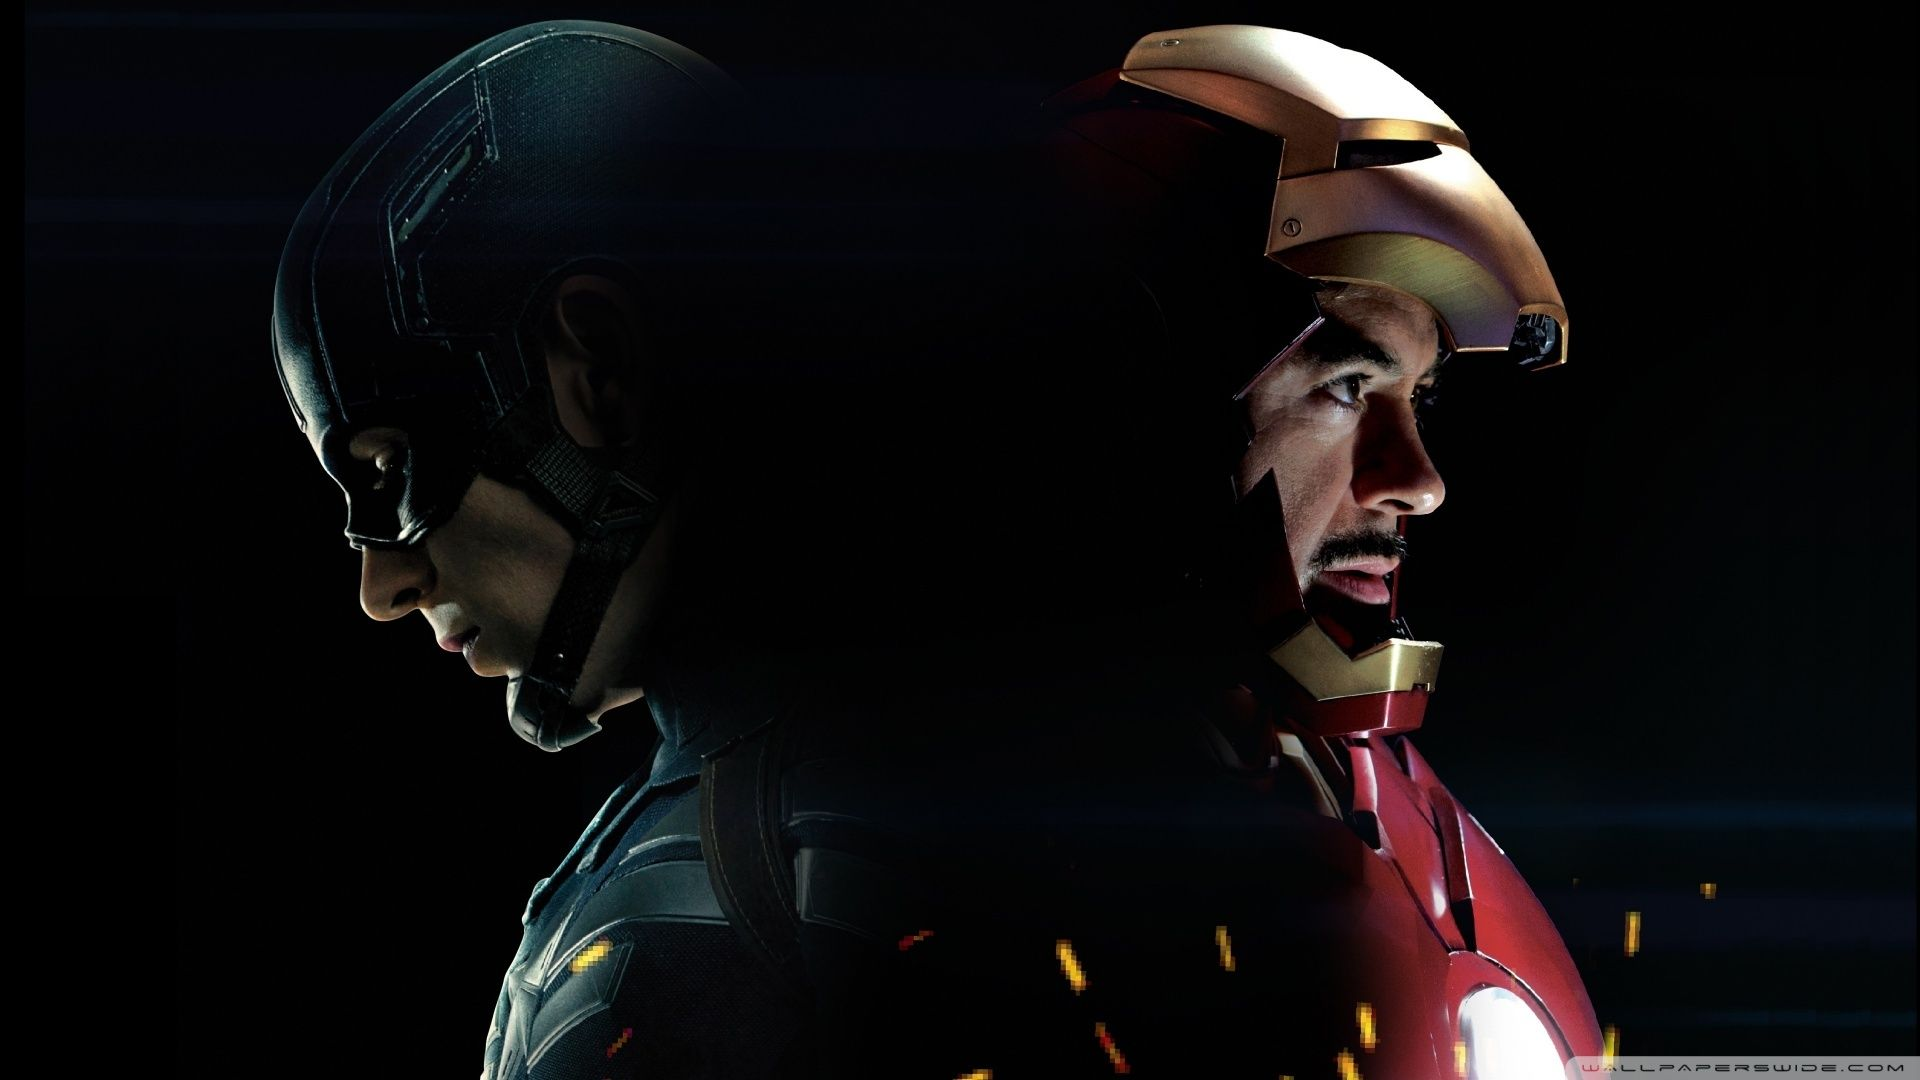 Captain America 3 Civil War HD Wallpaper 1920x1080 Need IPhone 6S